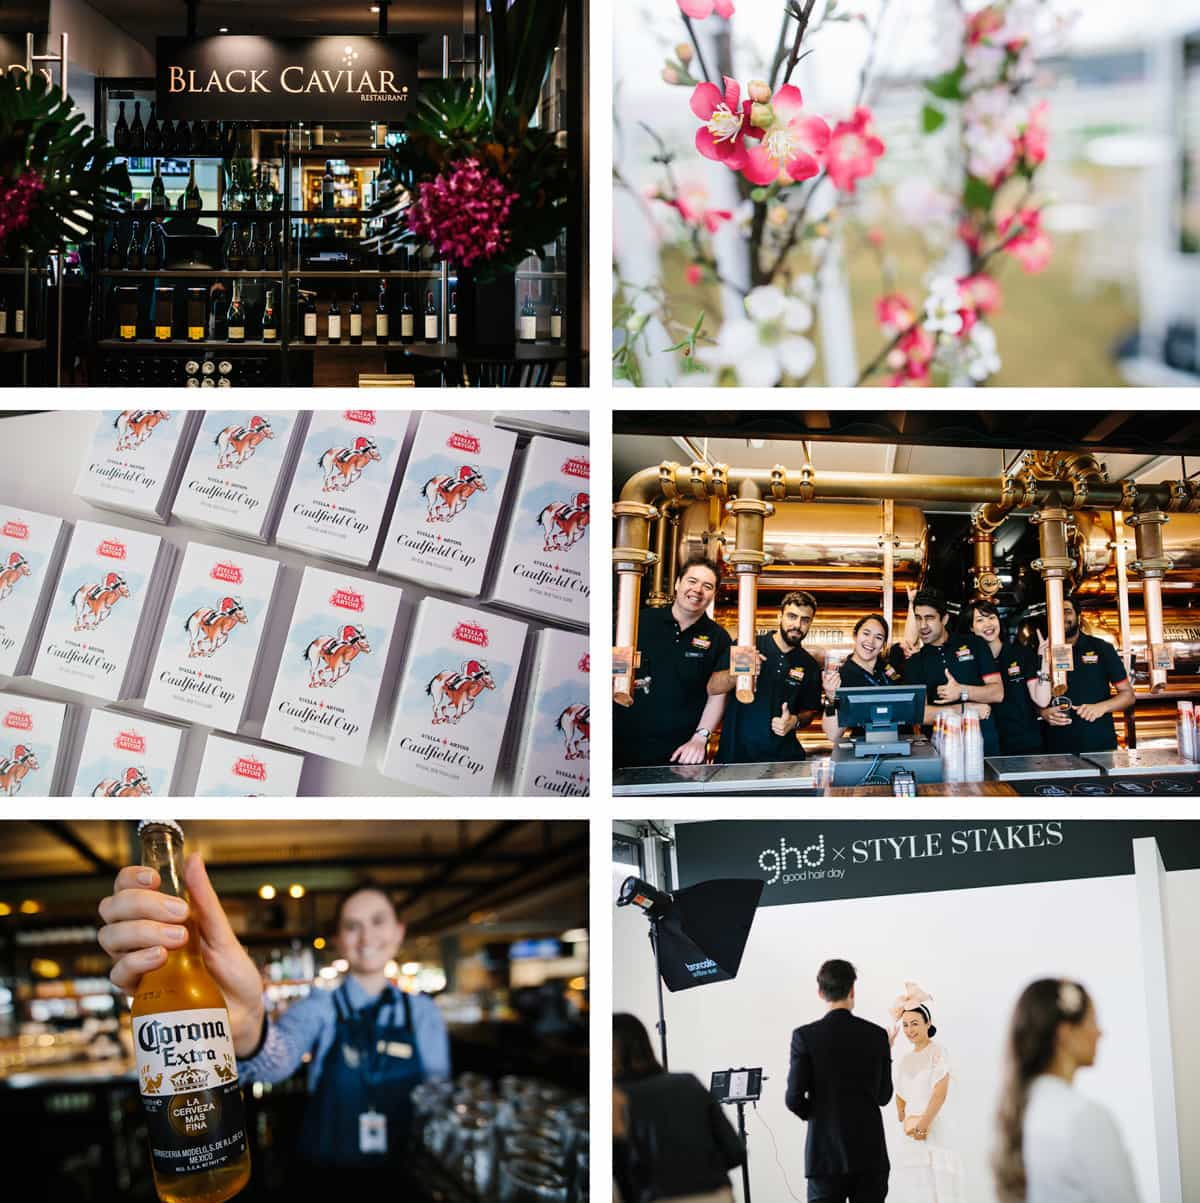 Restaurant and Hospitality Photography in Melbourne - Events, Food, VIPs